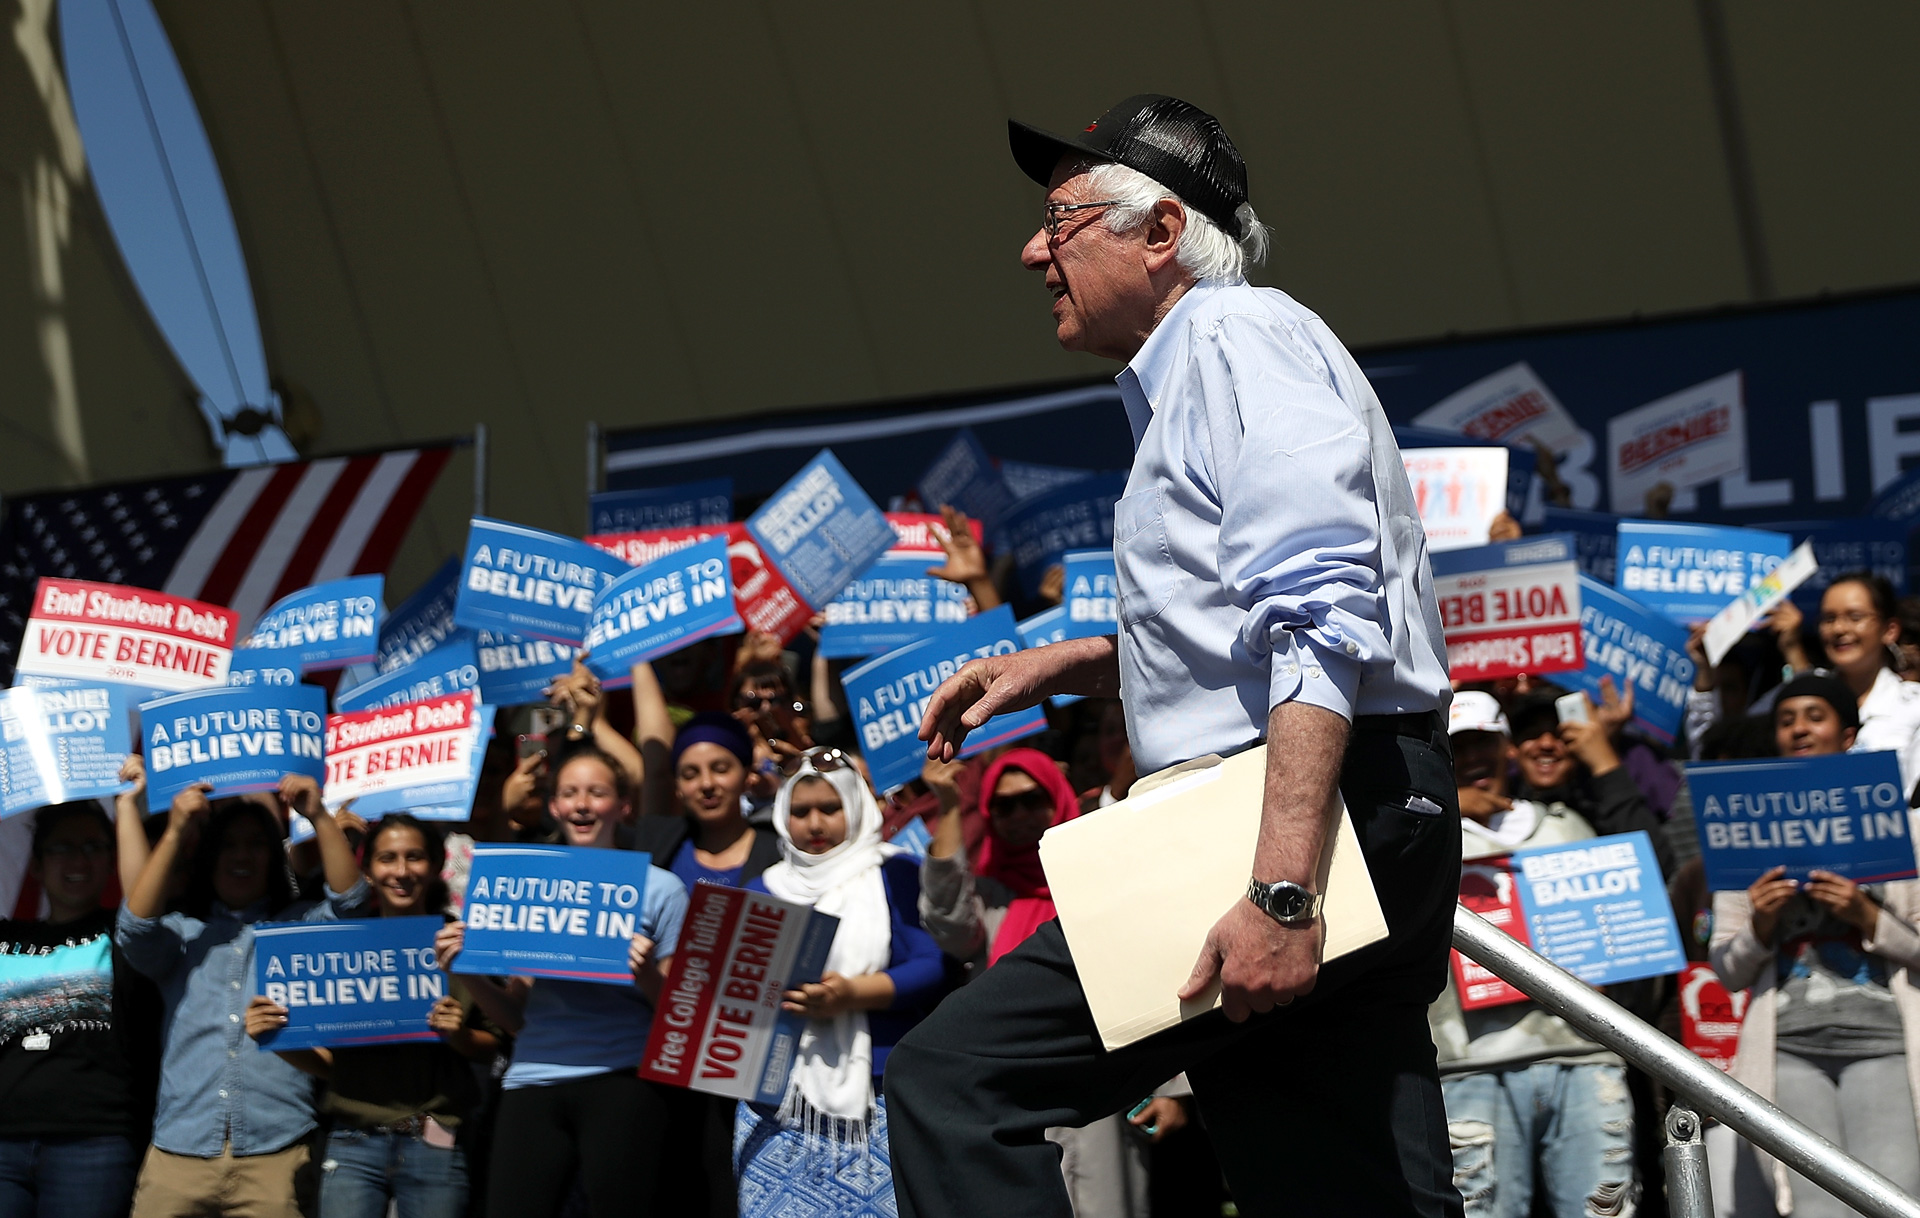 Sen. Bernie Sanders arrives to speak at a campaign rally on May 10, 2016 in Stockton.